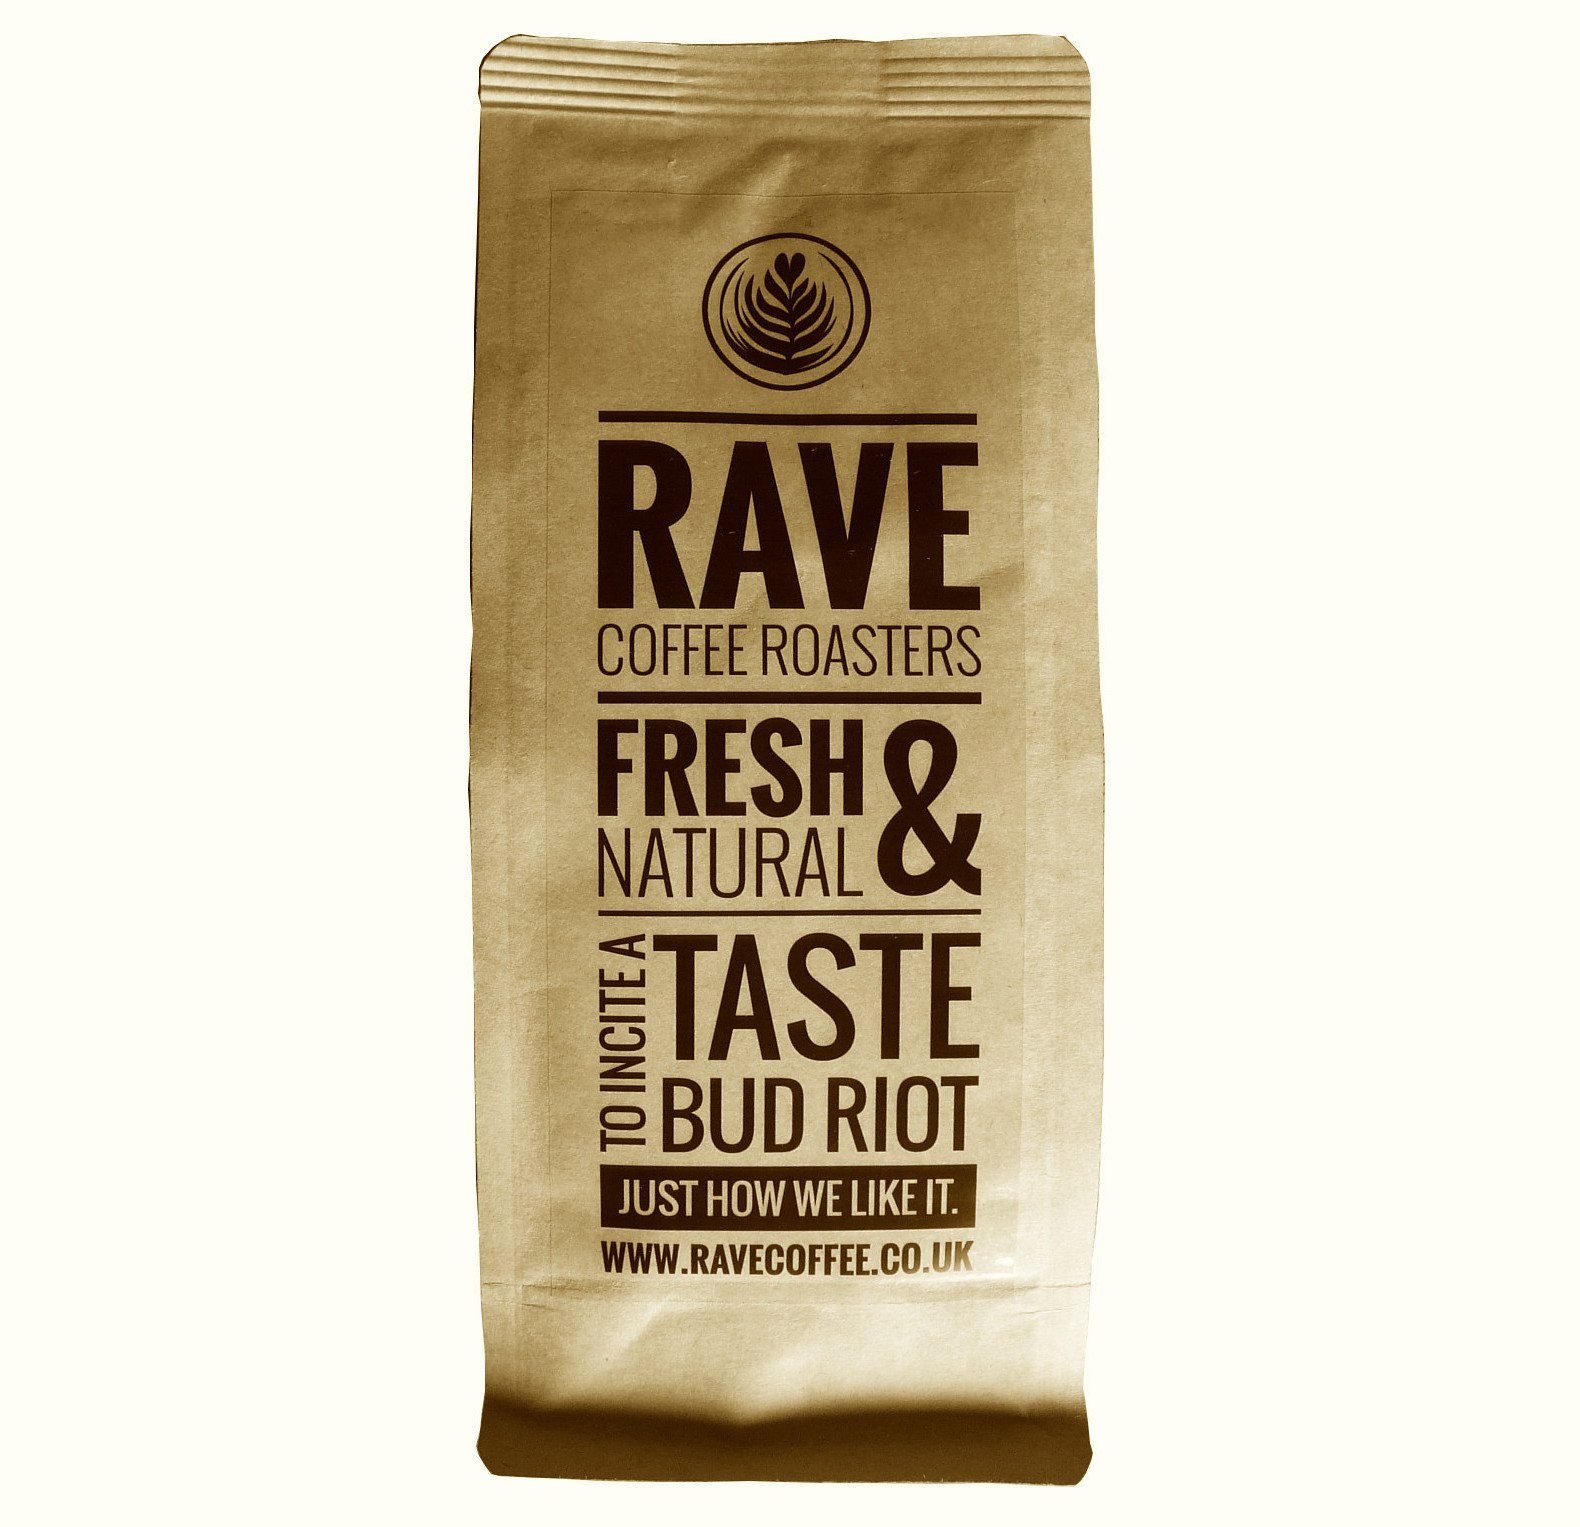 Rave-Coffee-Ethiopian-Sidamo-2-Green-Coffee-Beans-for-Home-Roasting-500g